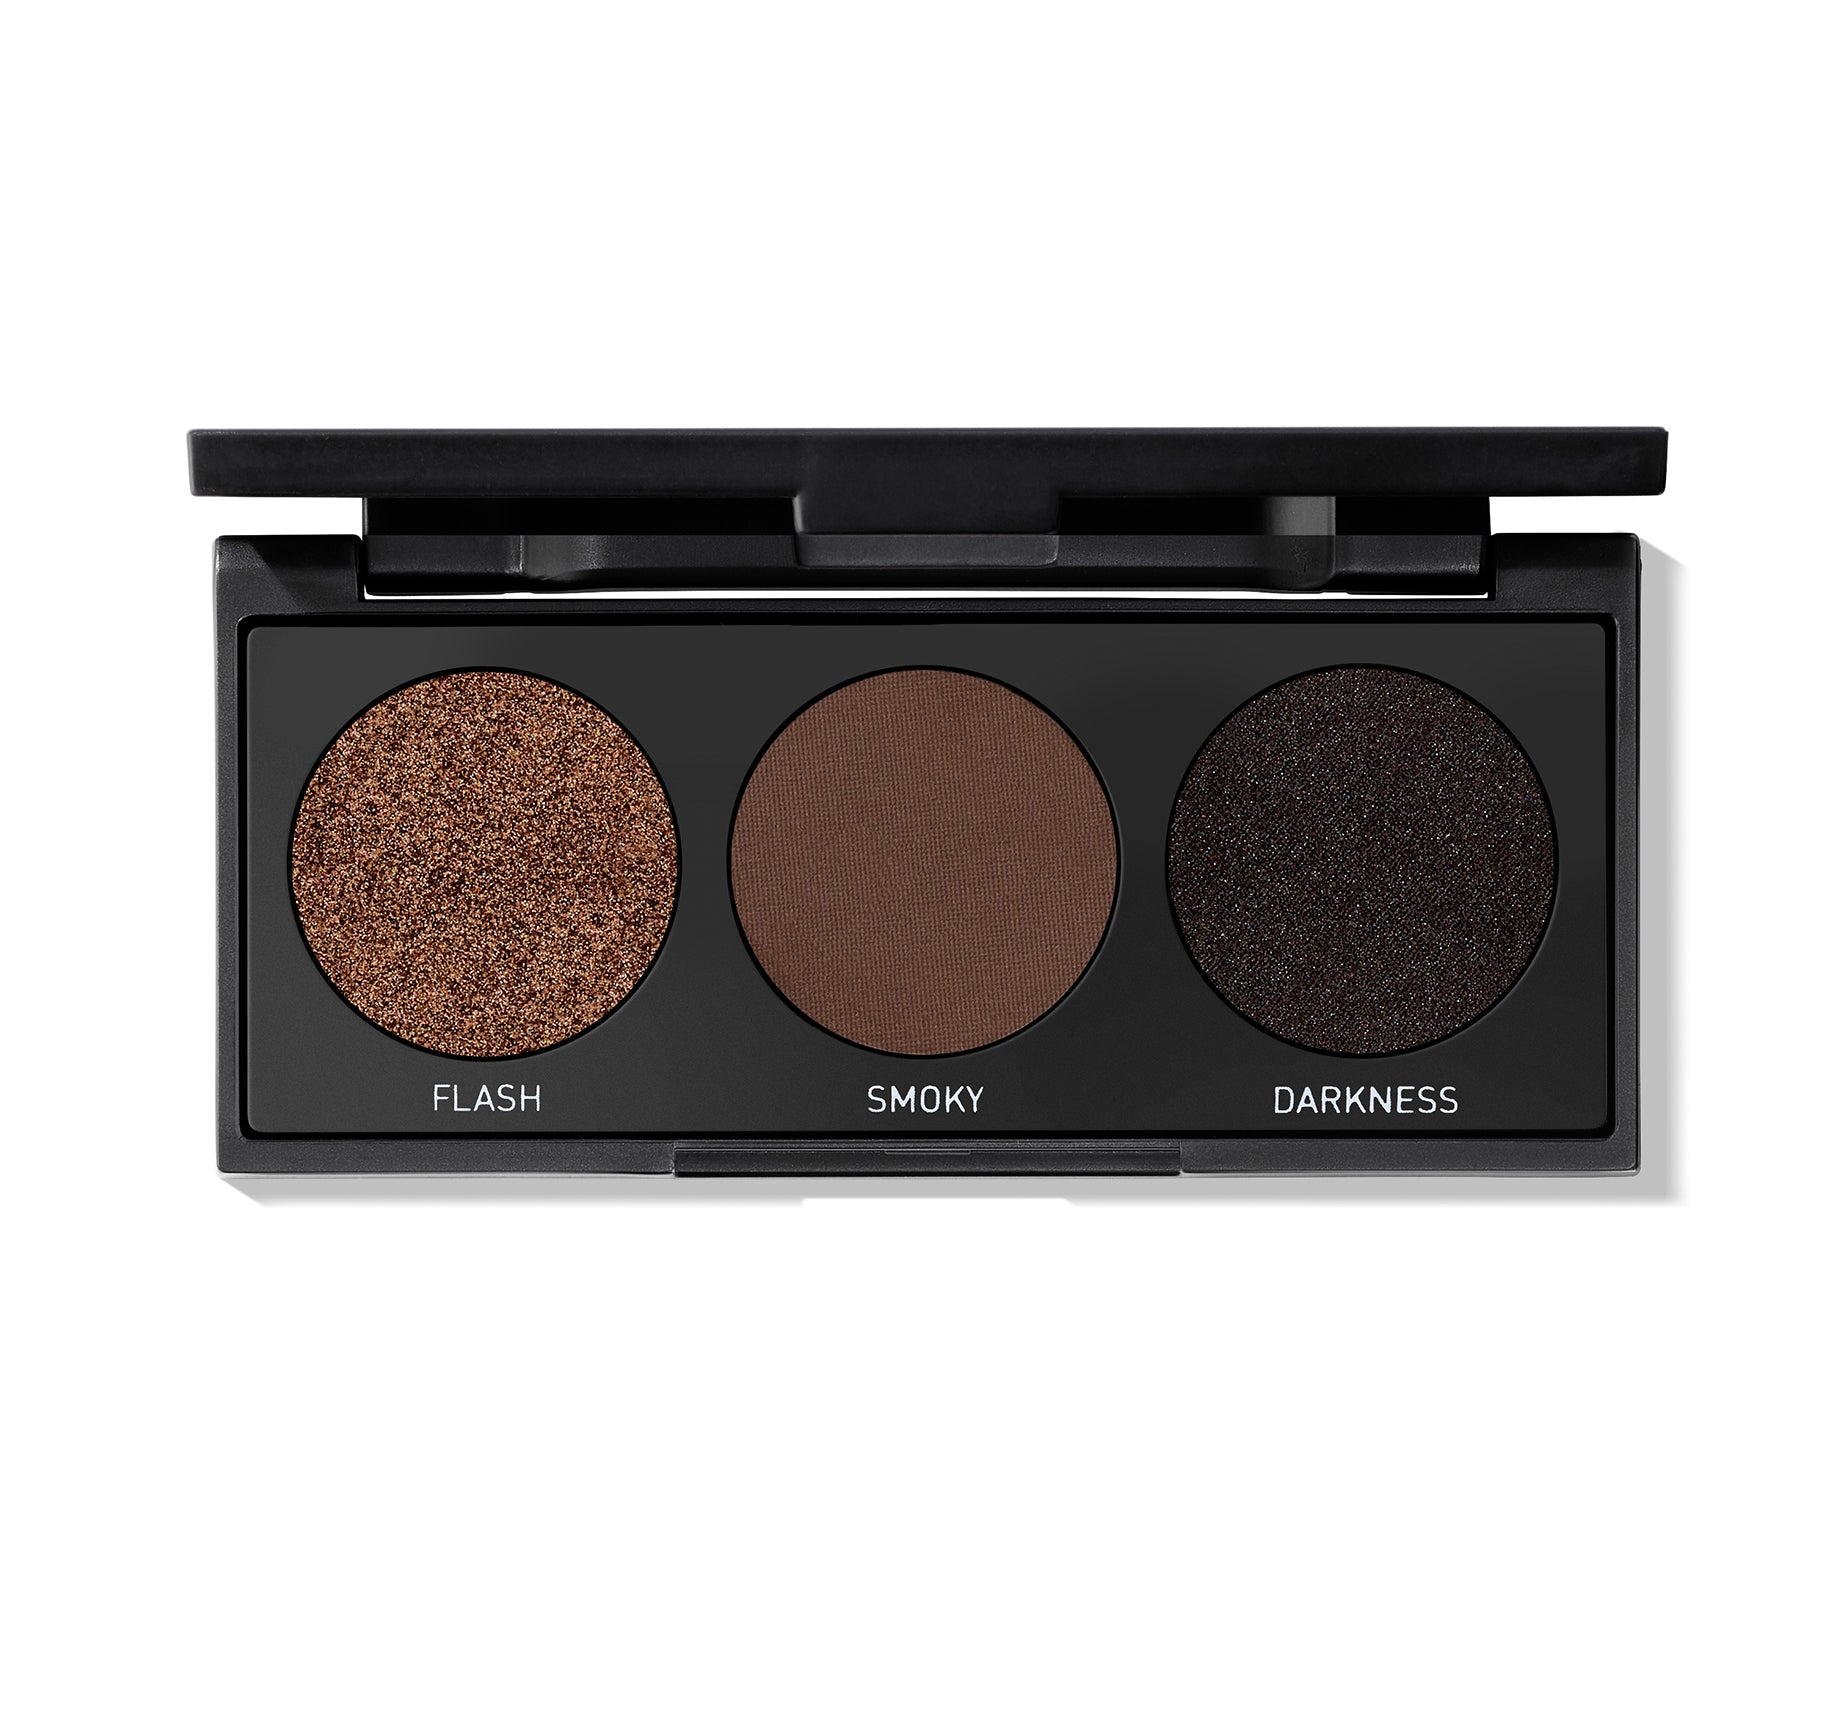 Morphe - 3A DEEP SMOKY EYESHADOW PALETTE